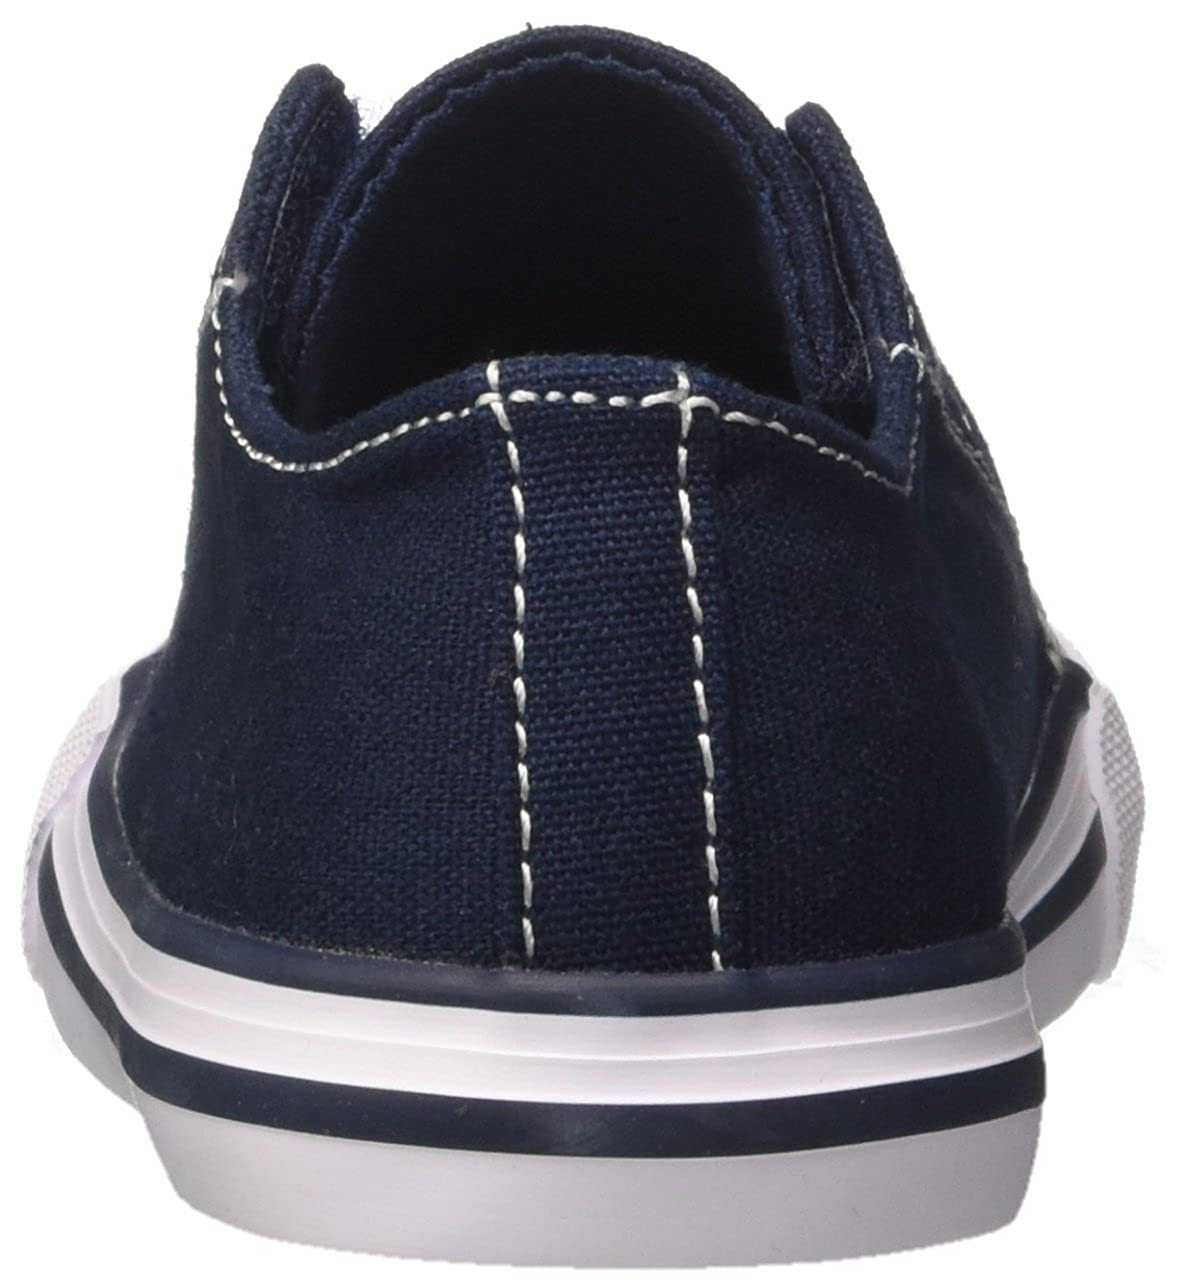 Chicco Chis Boys/' Slip On